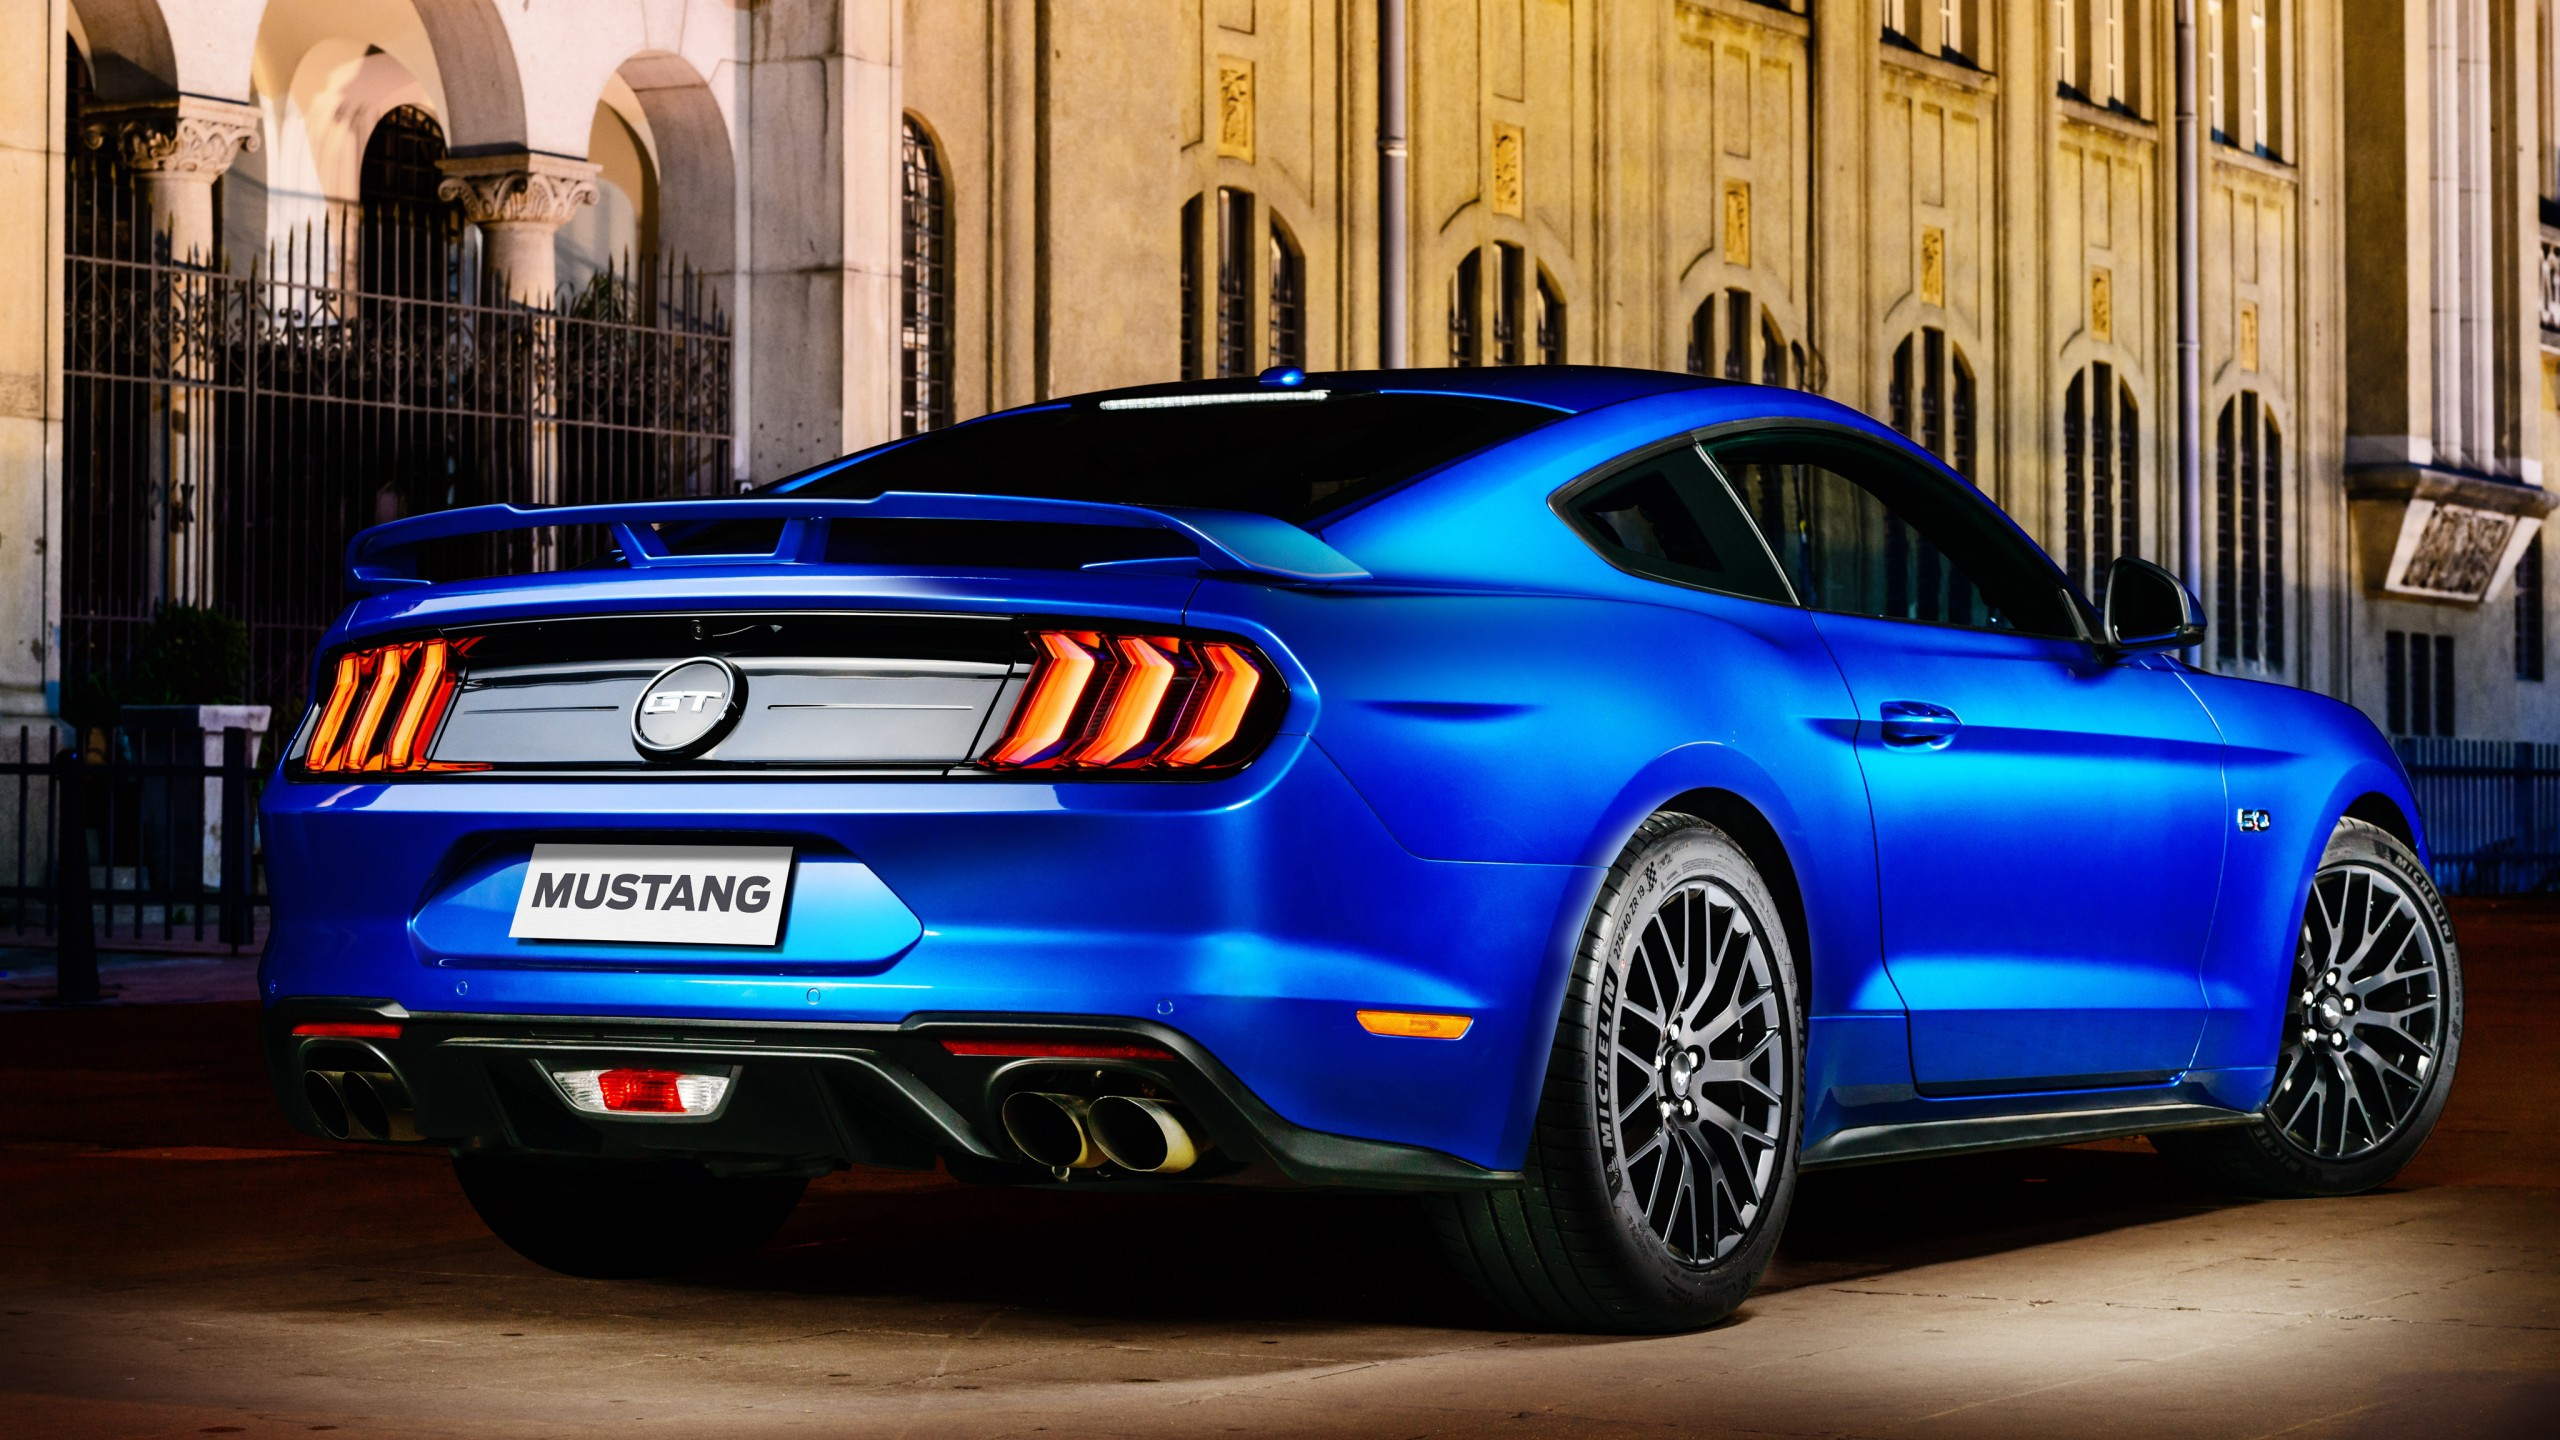 2018 Ford Mustang GT Fastback 4K 12 Wallpaper | HD Car Wallpapers | ID #10338